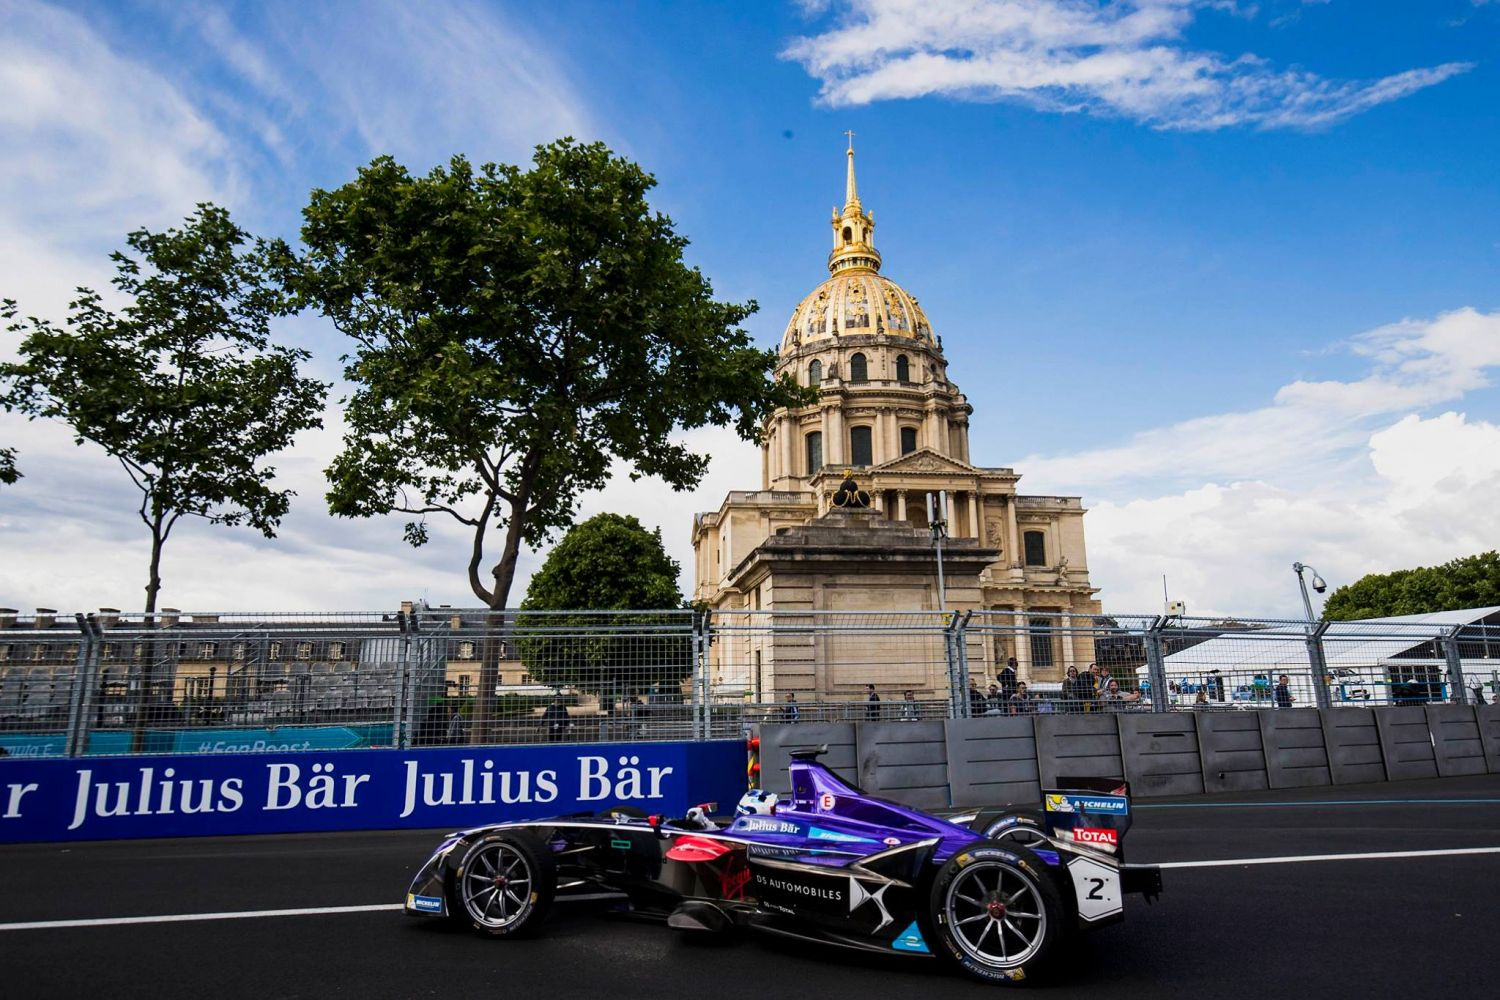 eprix de paris buemi et di grassi dominent les r p titions g n rales sur. Black Bedroom Furniture Sets. Home Design Ideas